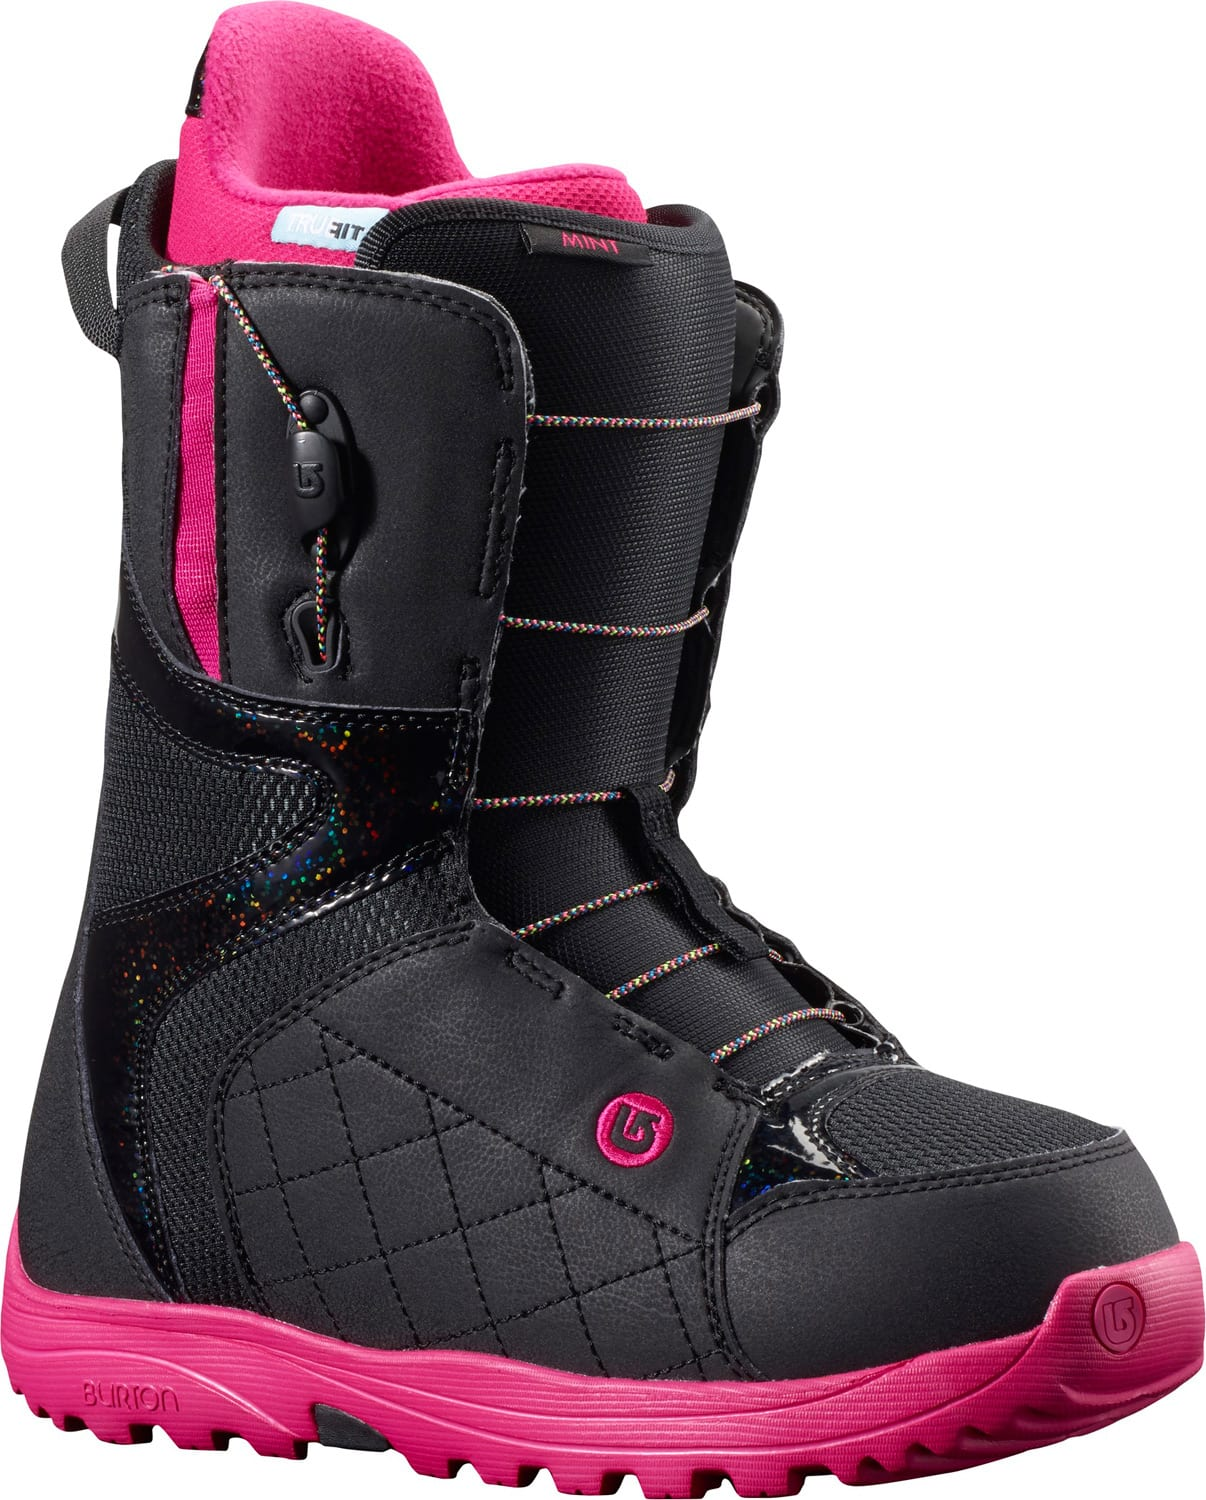 On Sale Burton Mint Snowboard Boots Womens Up To 50 Off